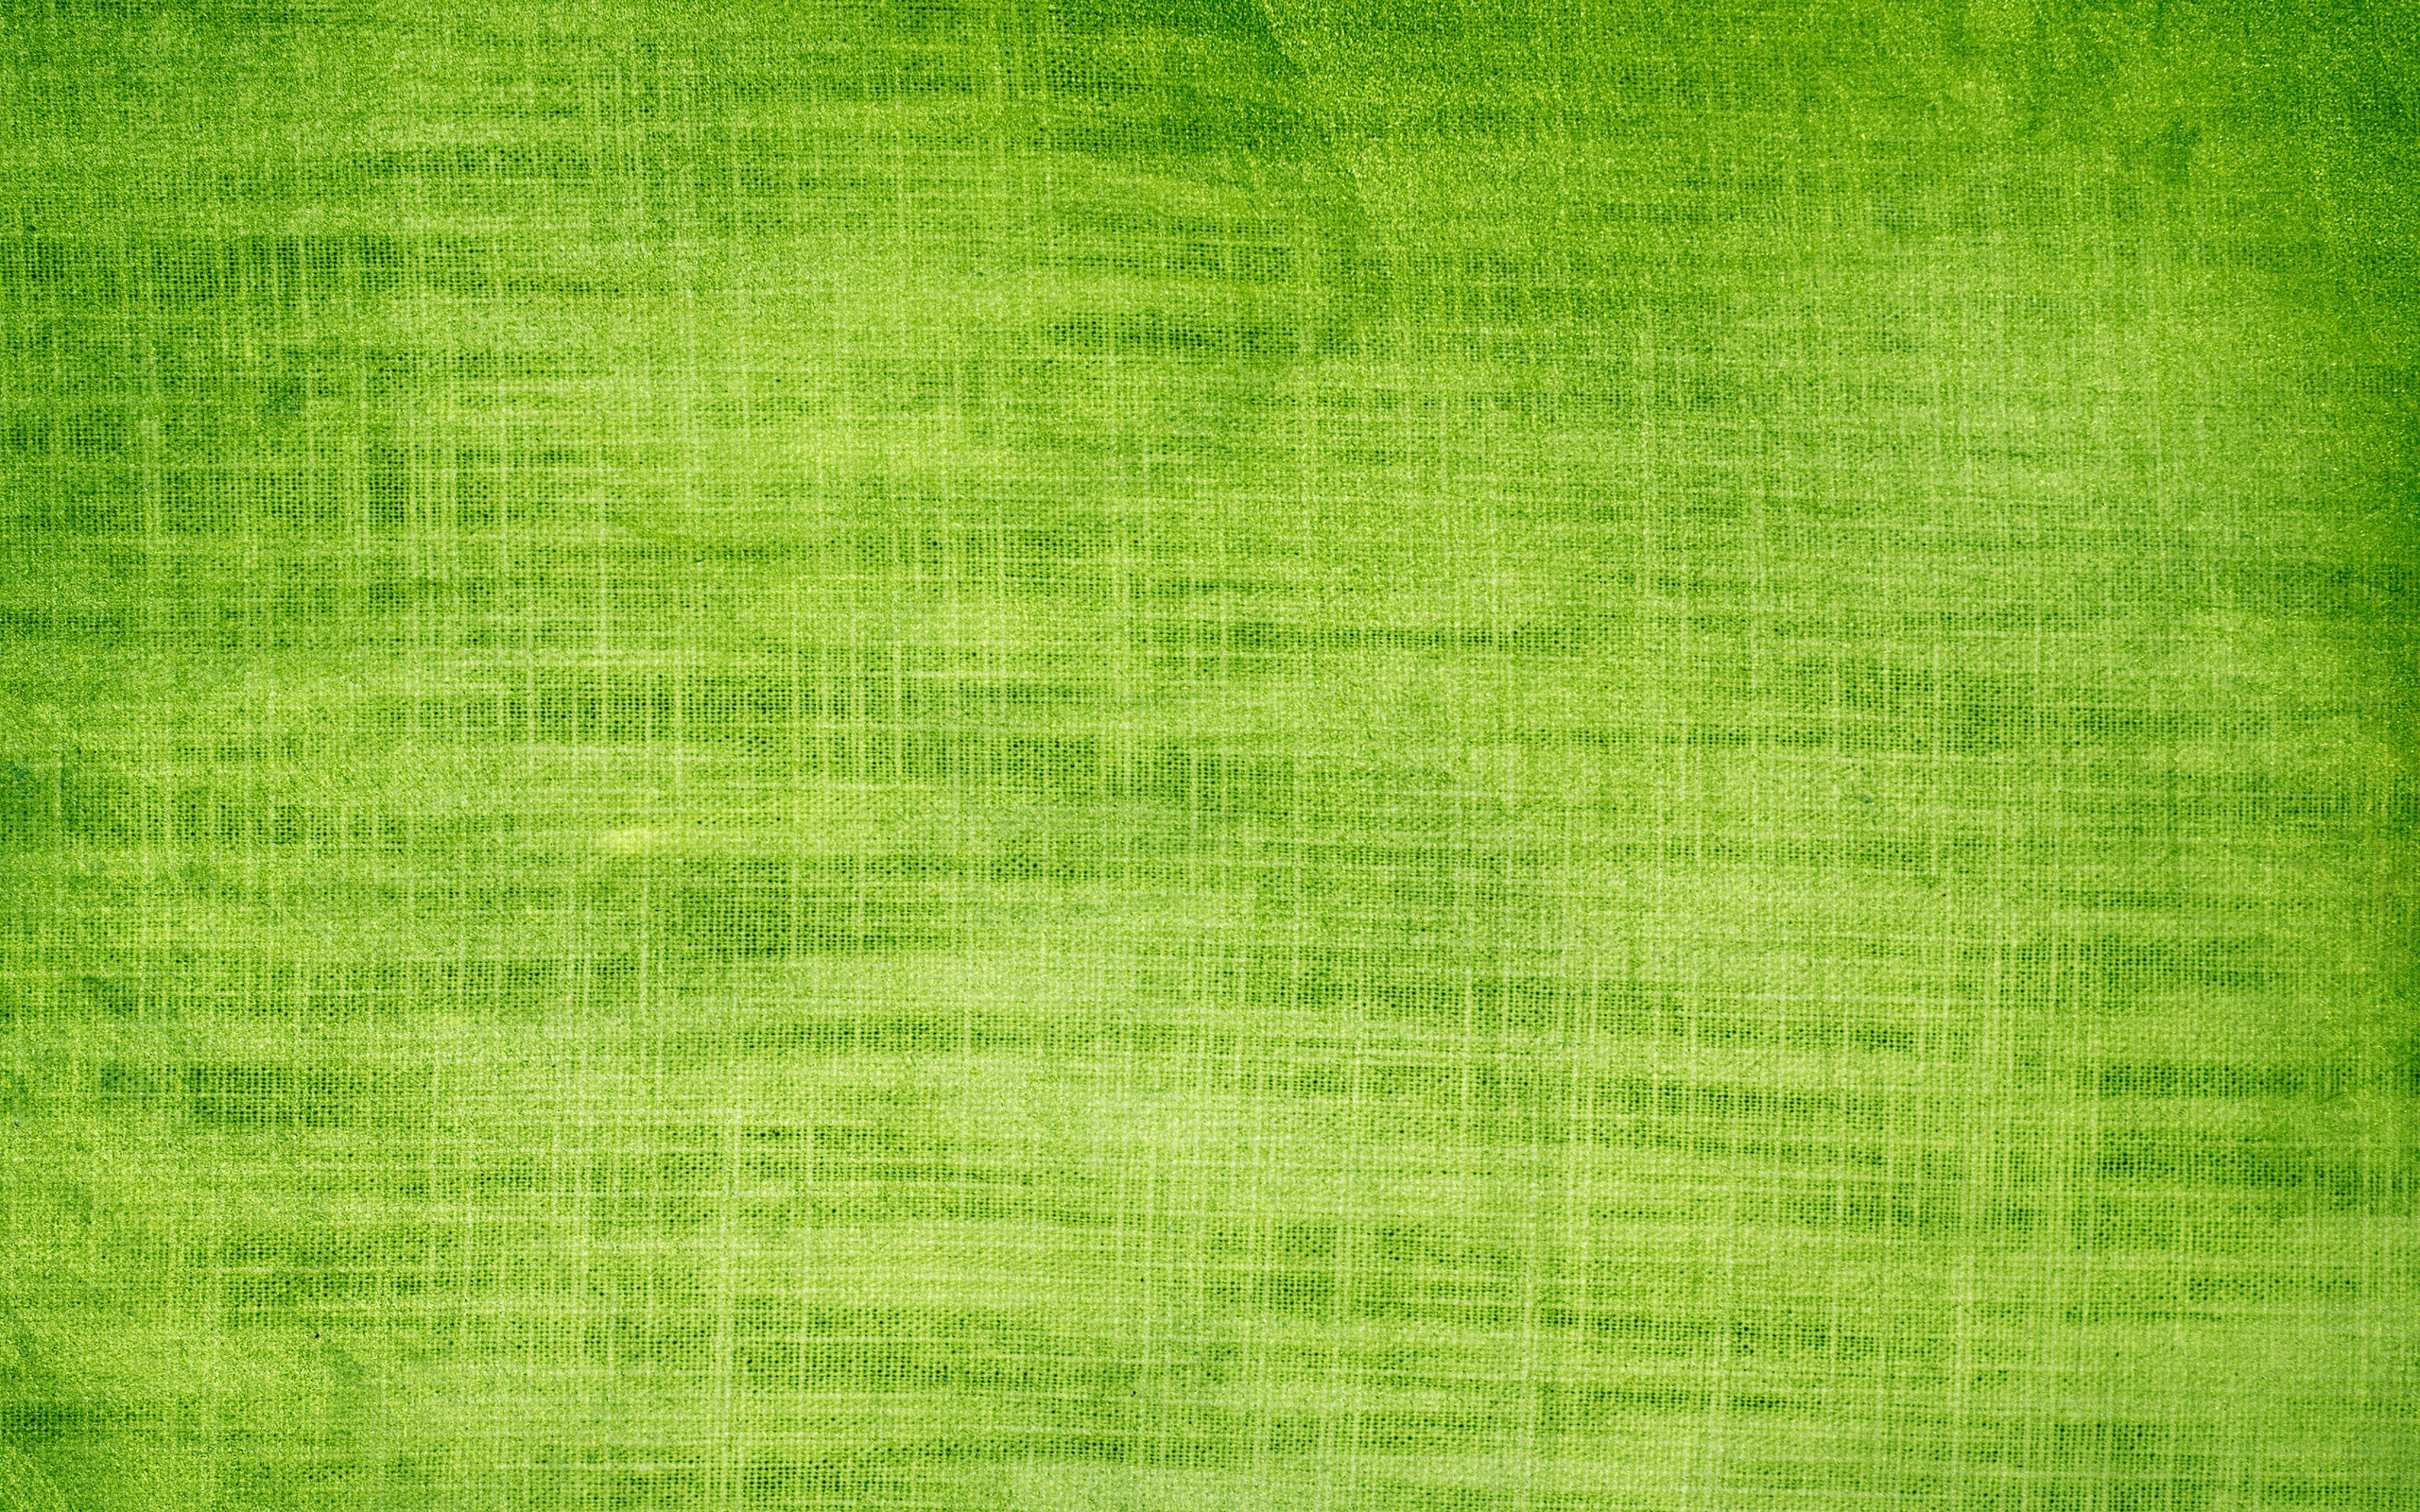 Green Fabric Texture wallpapers | Green Fabric Texture ...